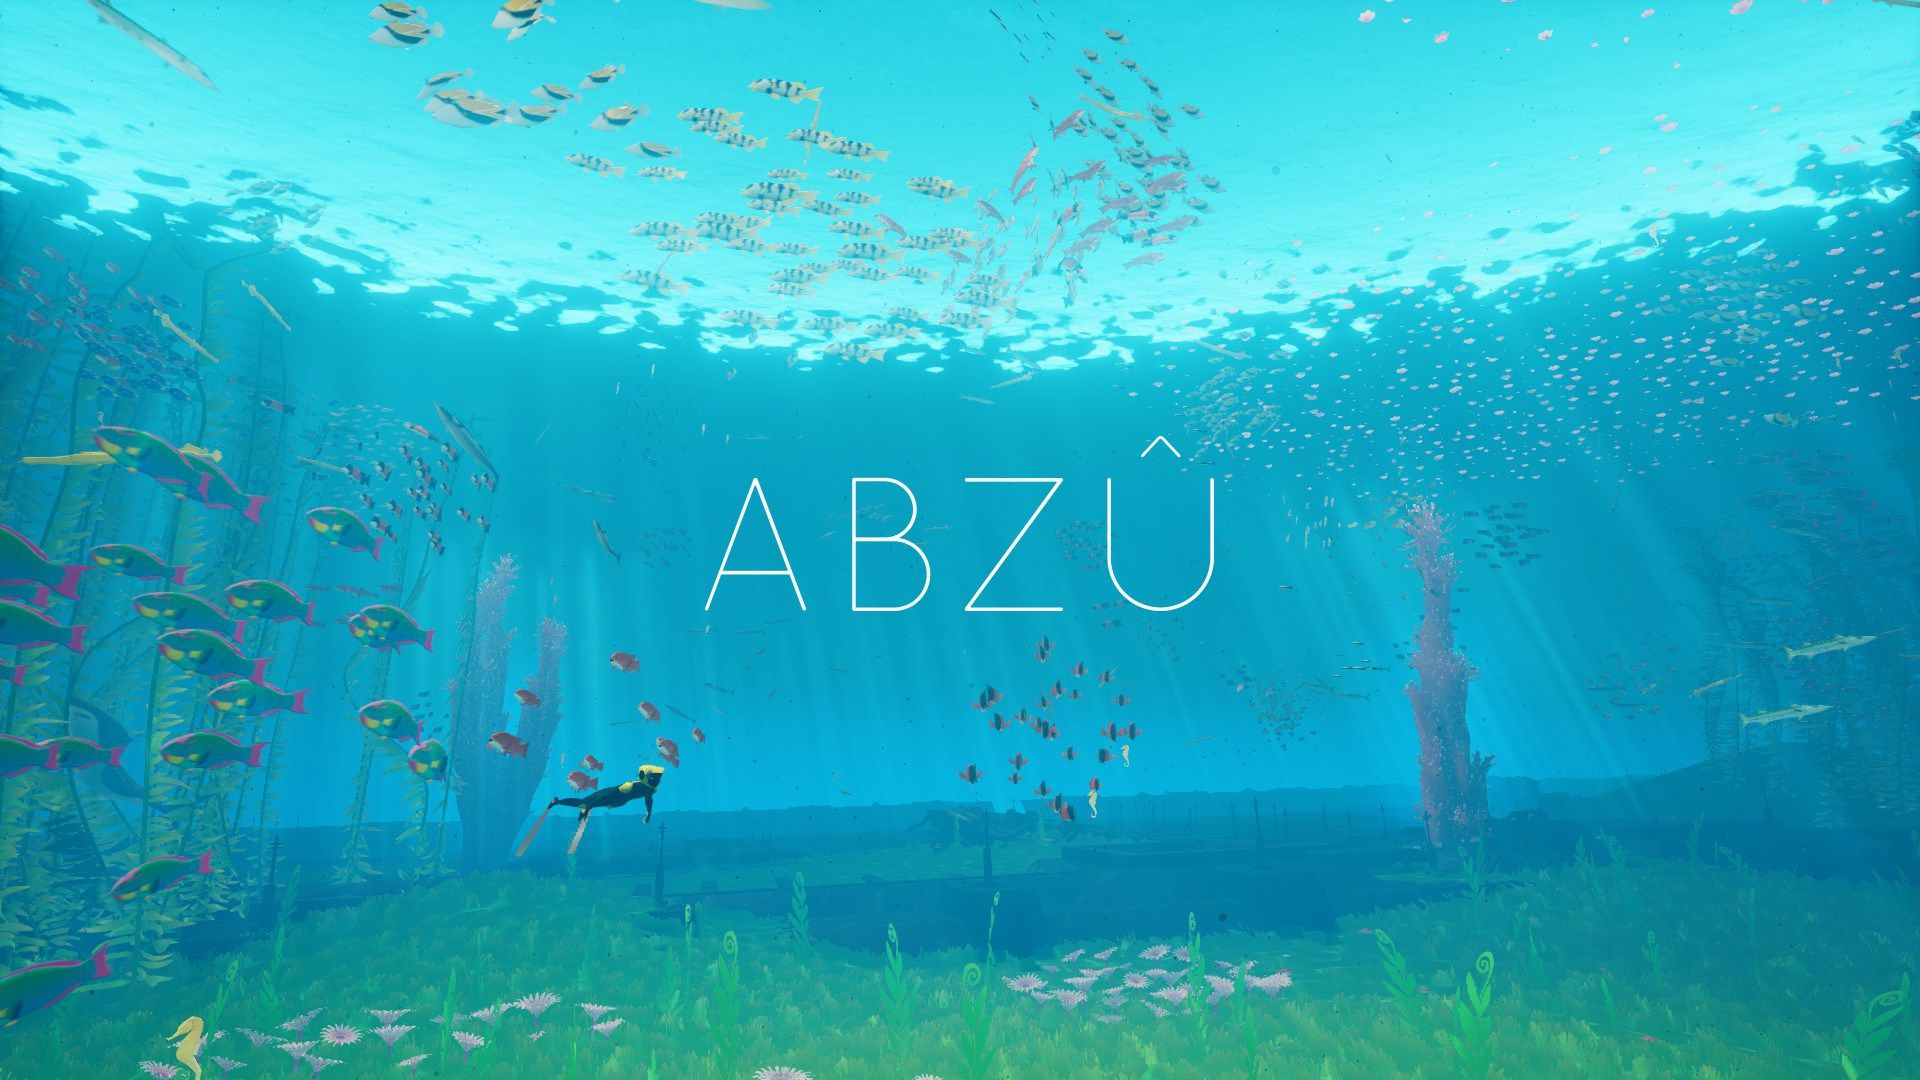 Pin by breannaholloway on Abzu the game in 2019   Games